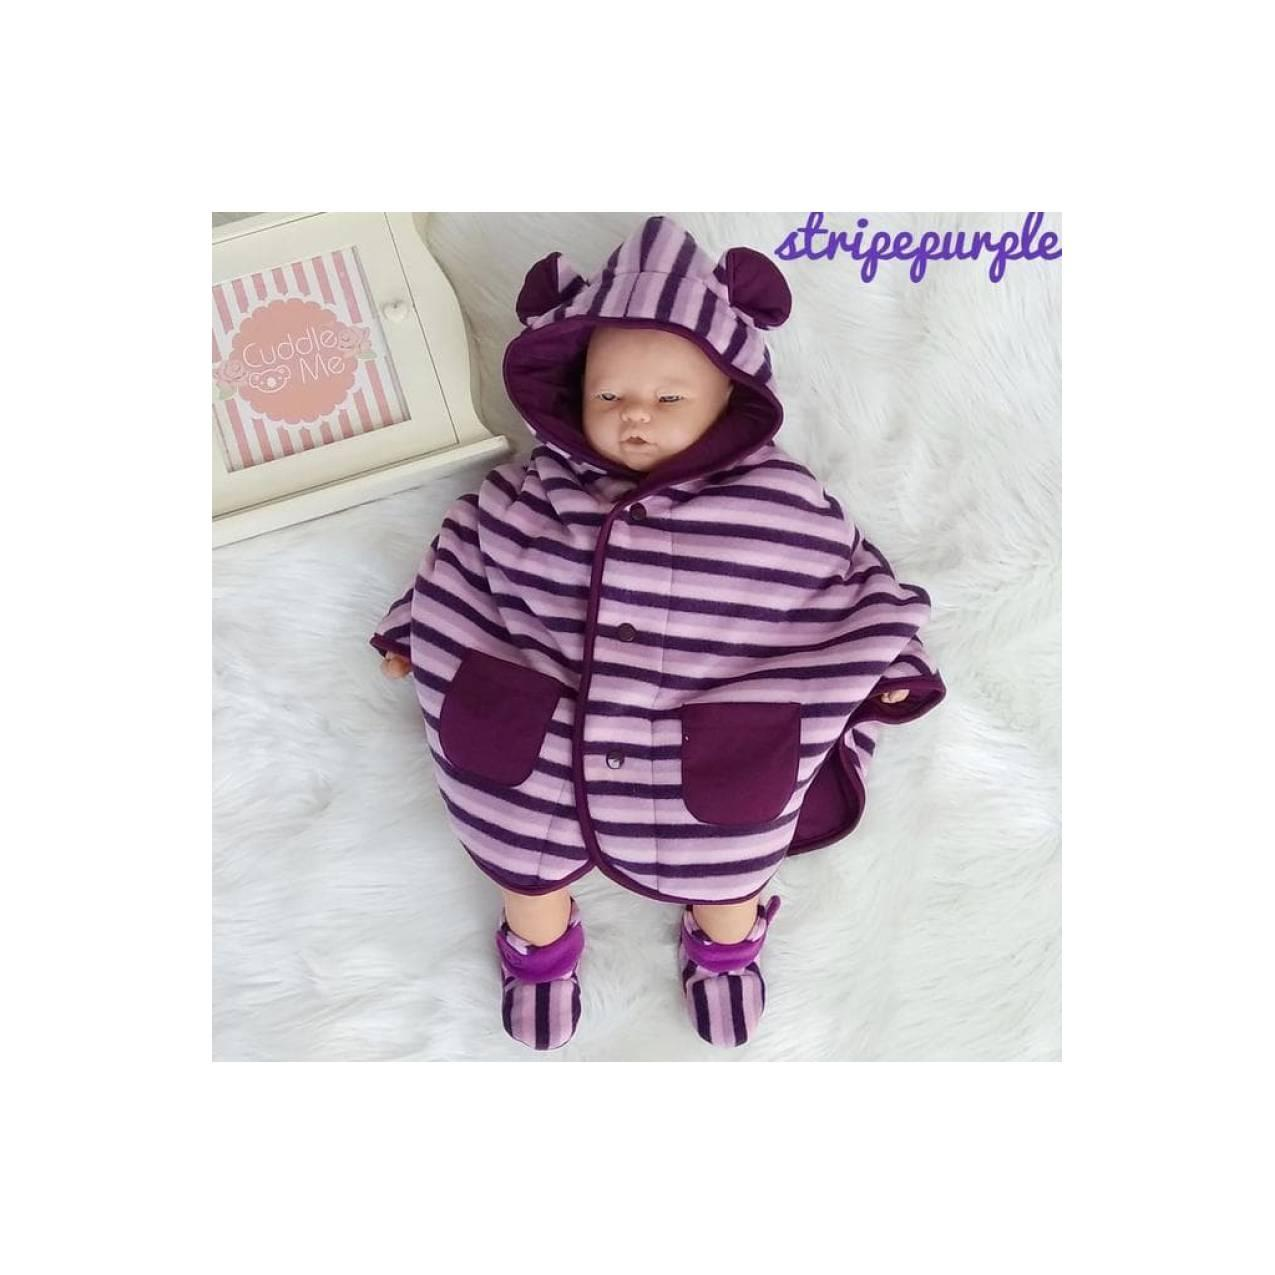 1 Set Cuddleme Babycape & Fitted Booties Jaket Bayi Sepatu Bayi